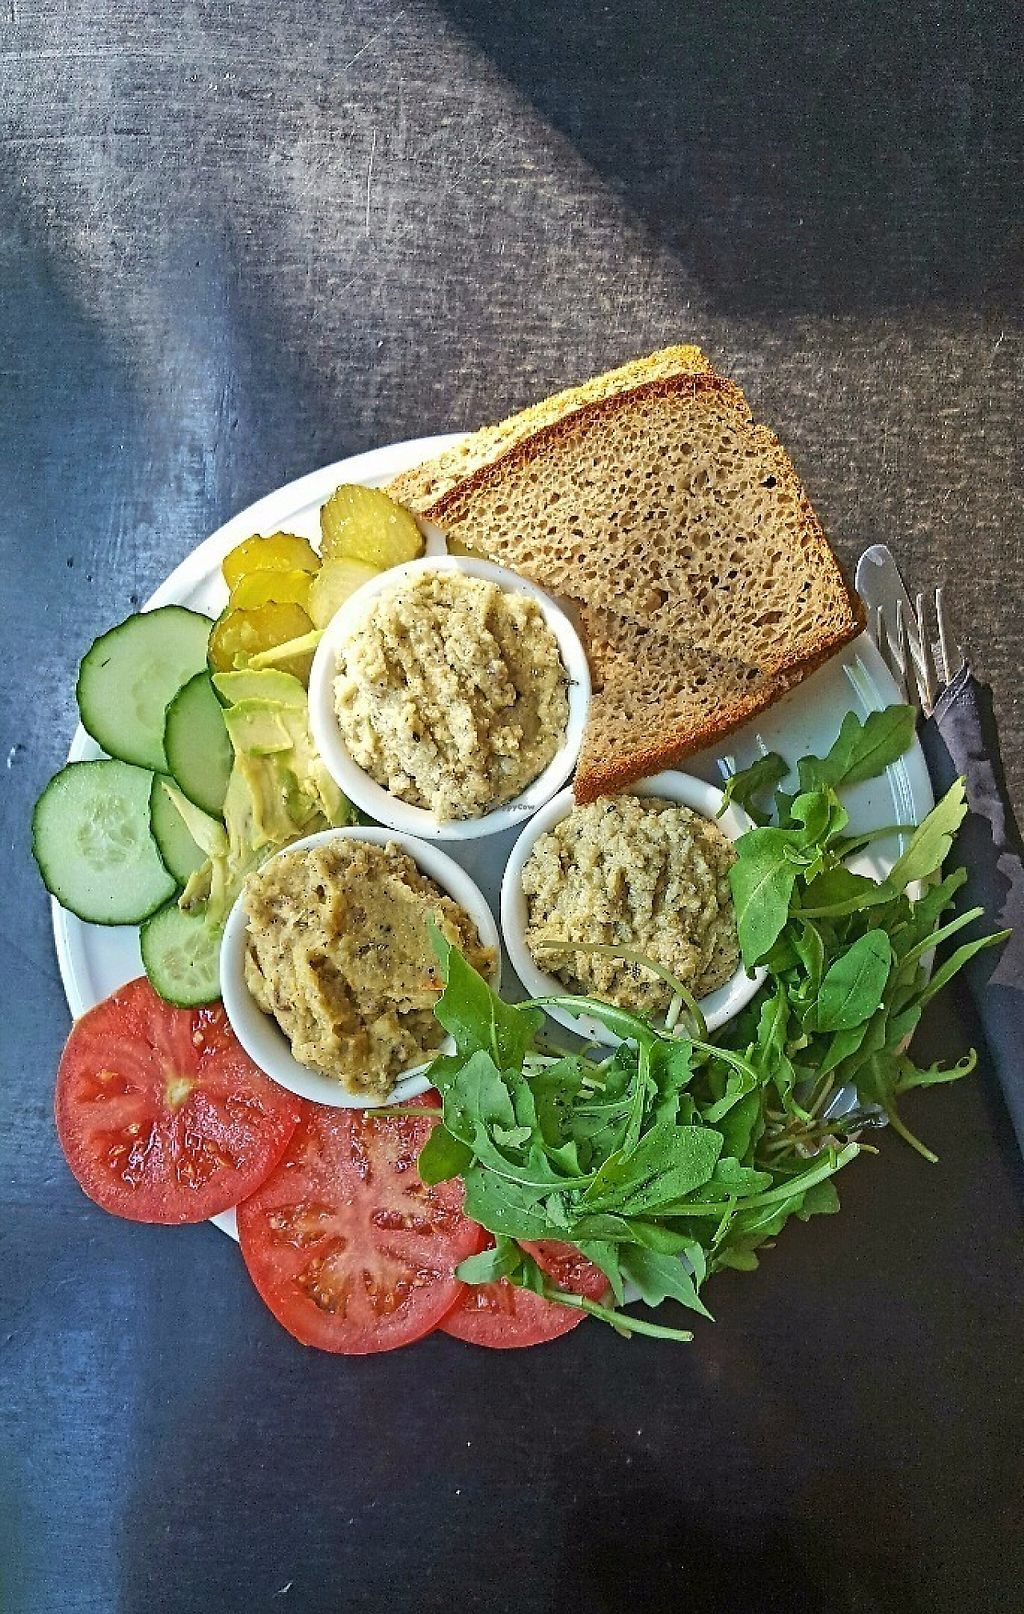 """Photo of Kawiarnia Fawory  by <a href=""""/members/profile/vanialuena"""">vanialuena</a> <br/>Kawiarnia Fawory, Krakow. Vegan Breakfast with 3 veggie spreads, bread and different fresh veggies (tomato, fresh cucumber, pickled cucumber & rocket salad) <br/> May 30, 2017  - <a href='/contact/abuse/image/50904/264207'>Report</a>"""